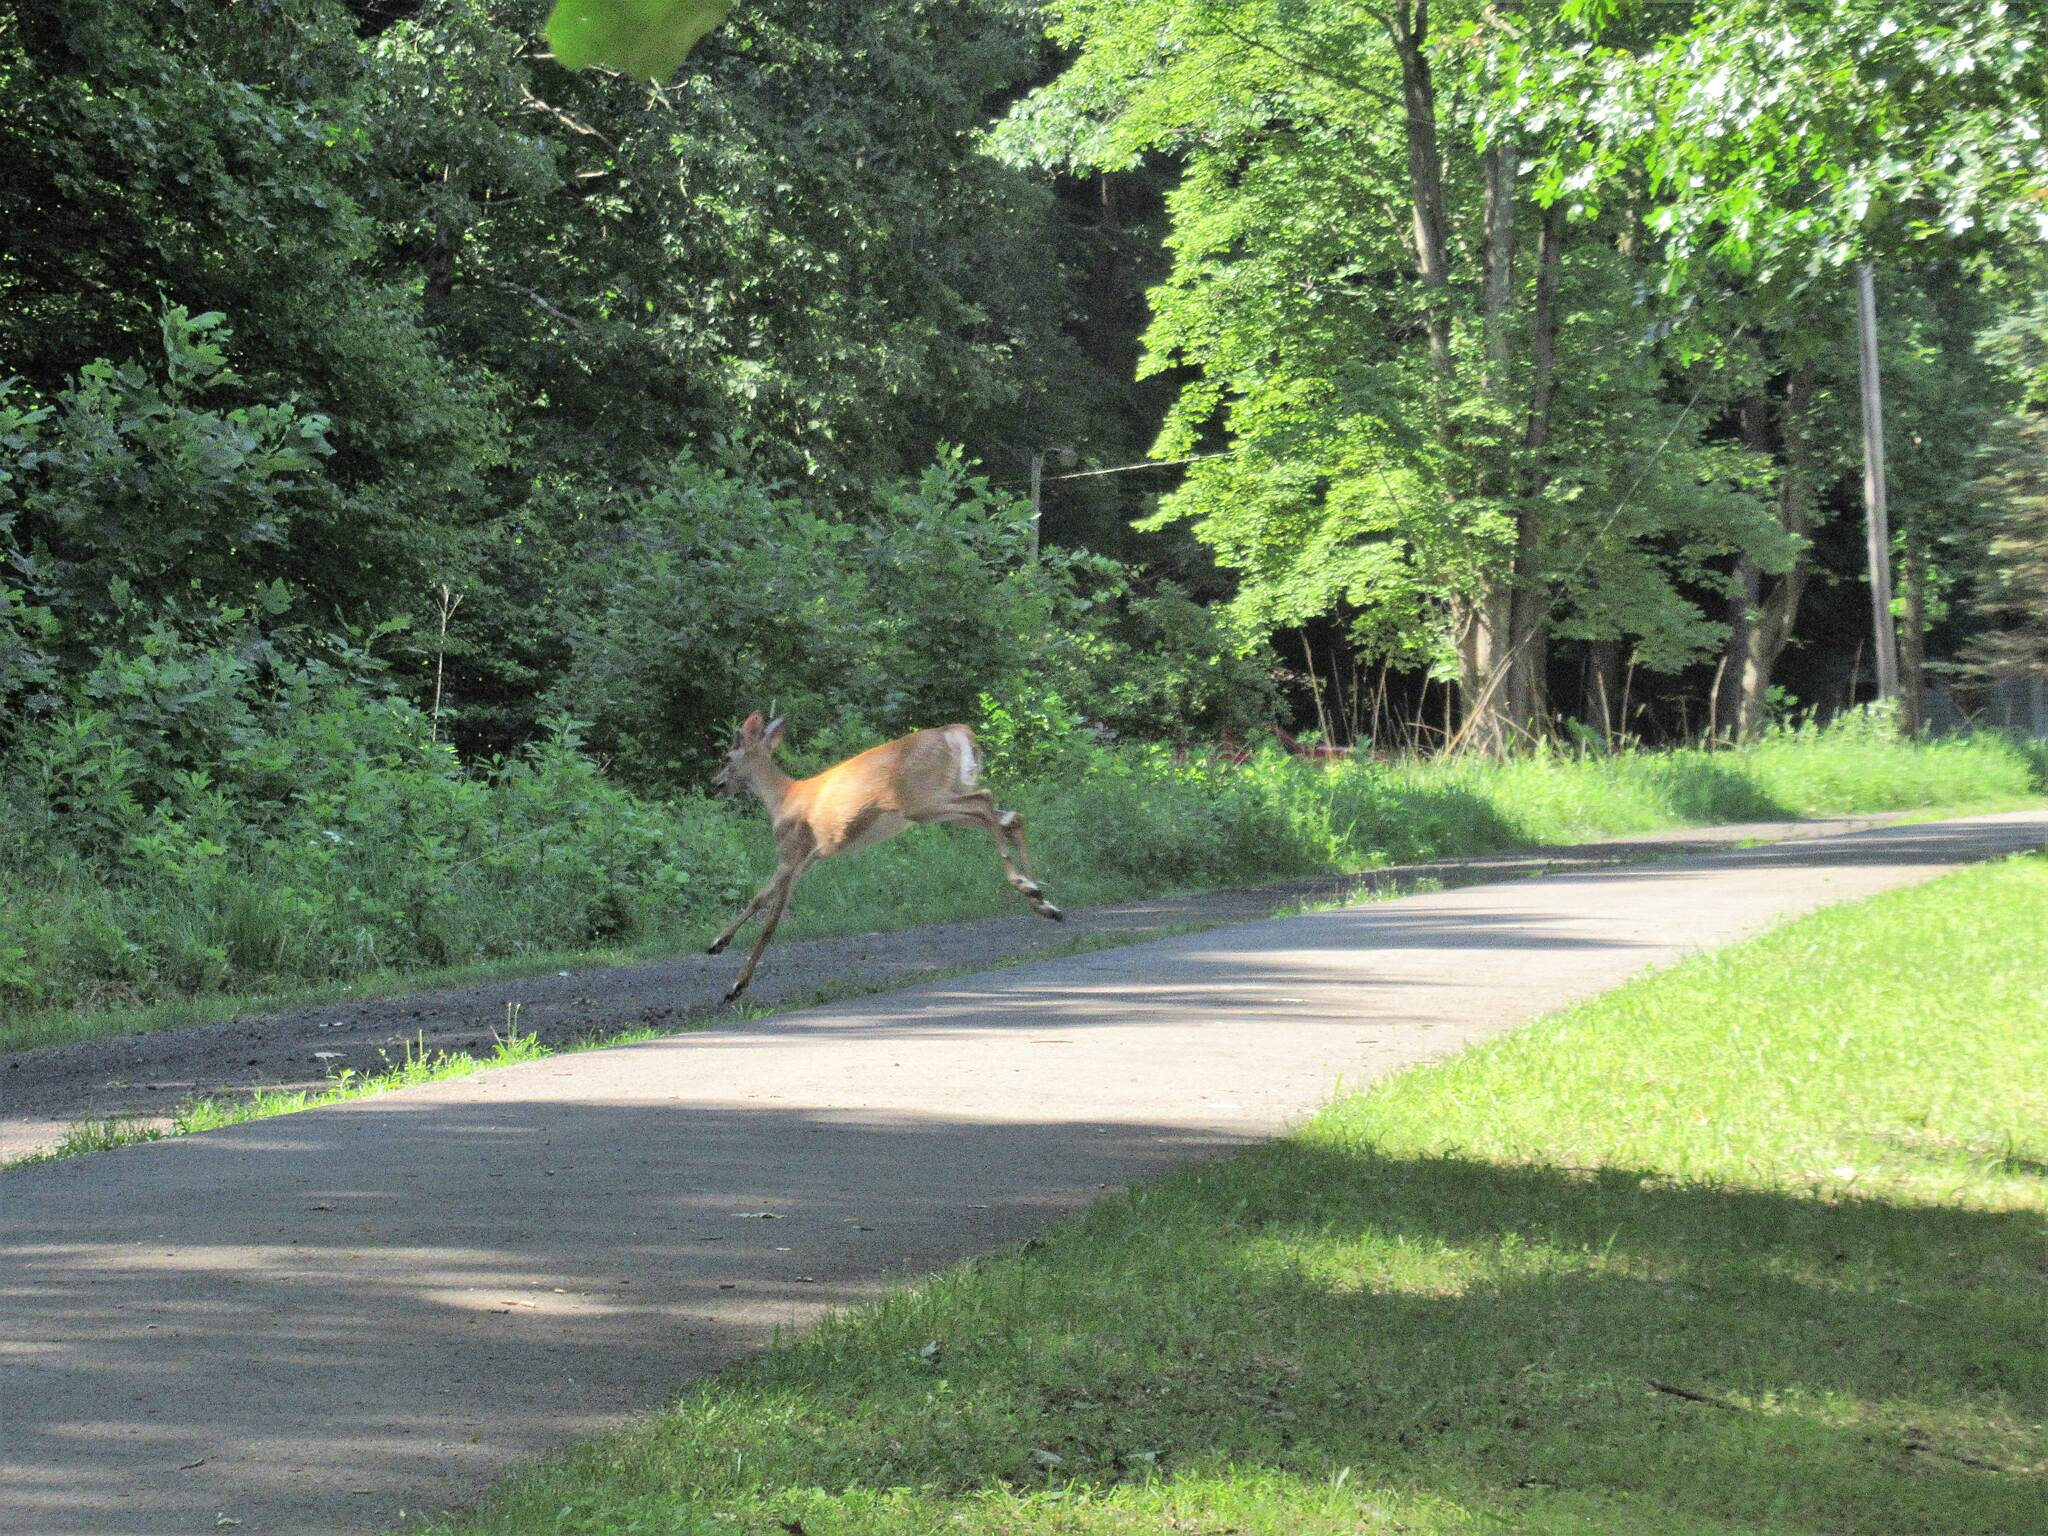 Allegheny River Trail Deer ran across the trail  A small buck with antlers in velvet swam across the Allegheny River and up onto the trail and crossed in front of us. Near Brandon.